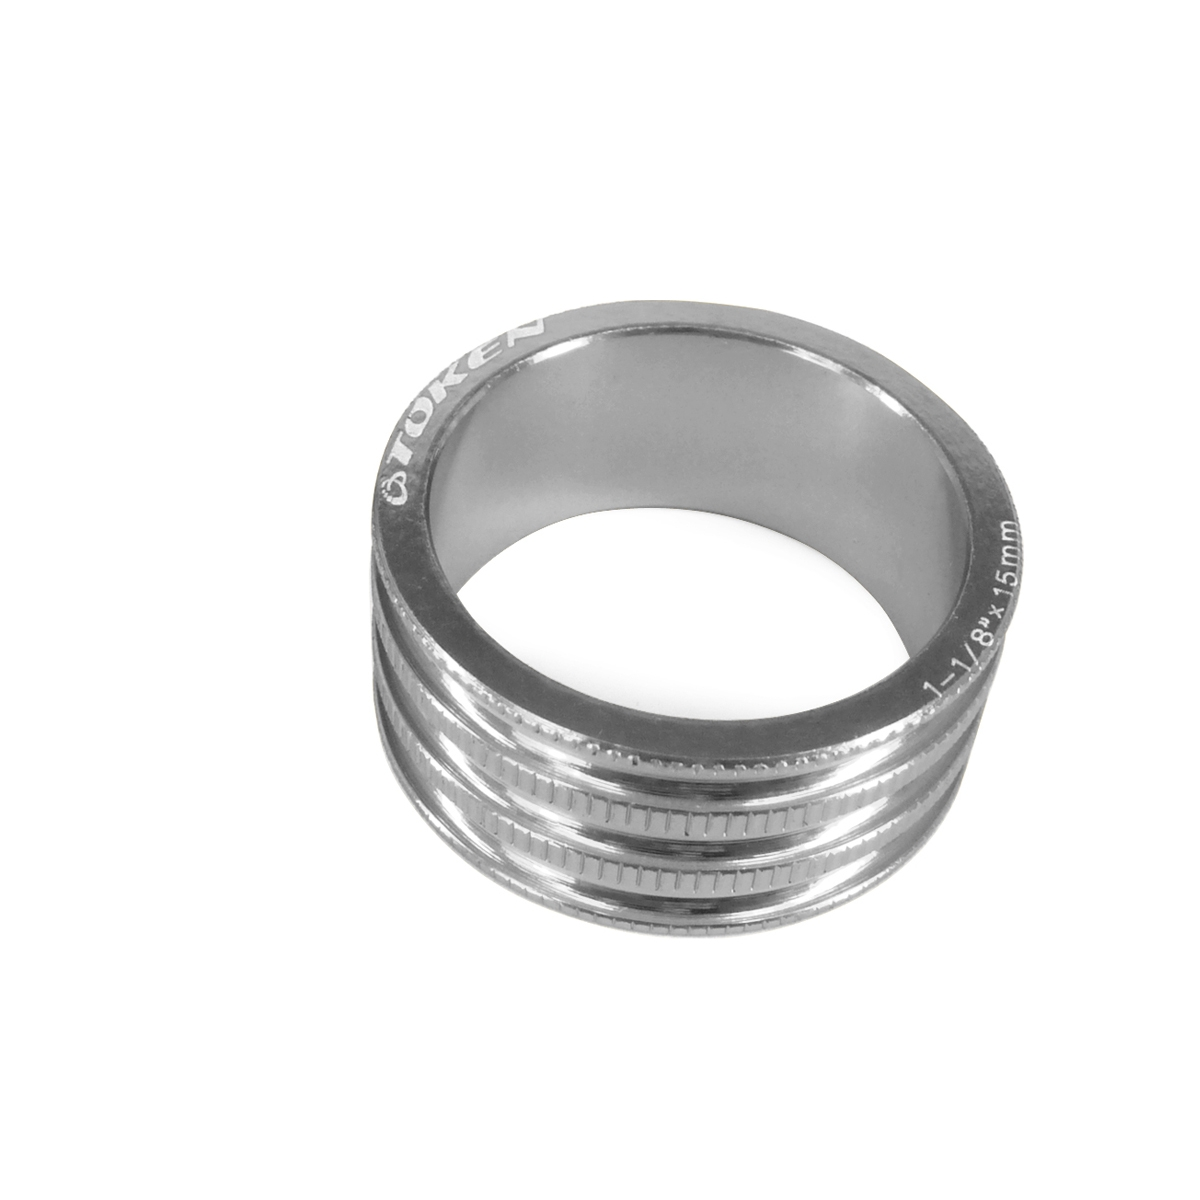 Entretoise Ahead-Set Token 15 mm 9,2 G Argent X 10